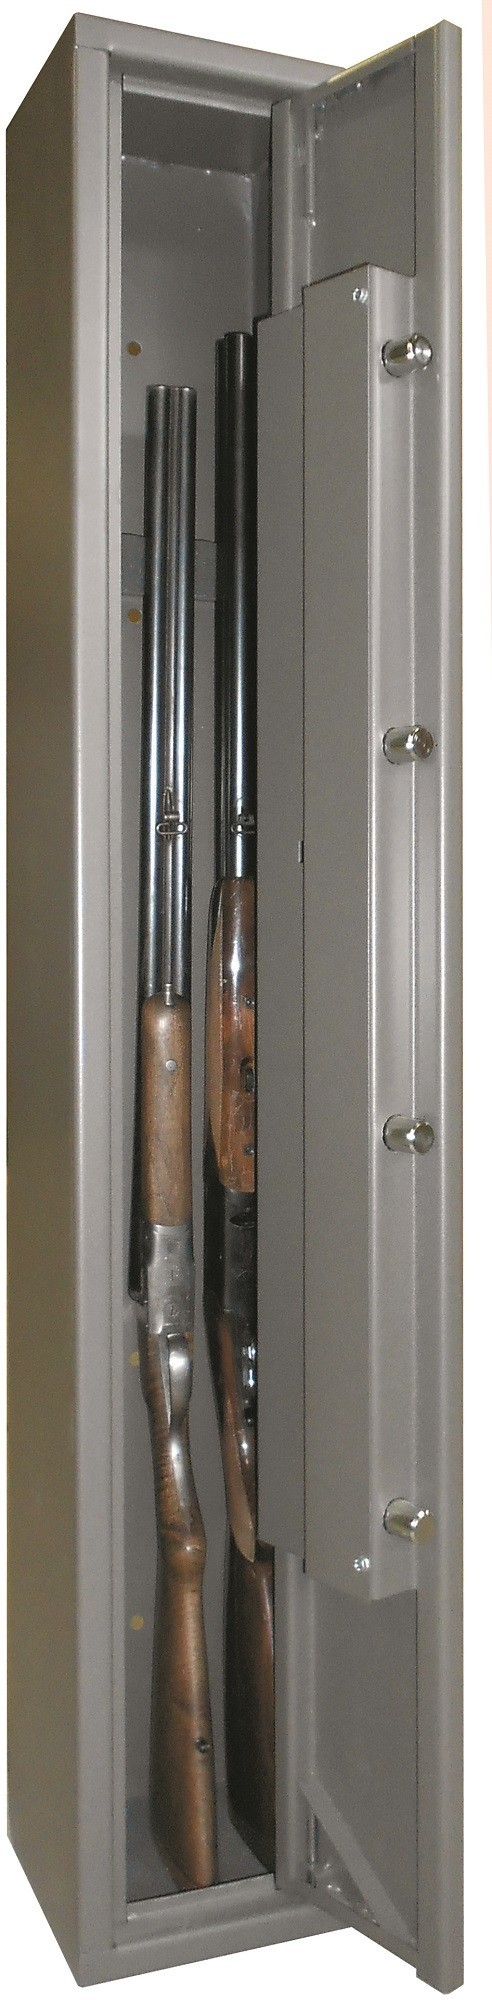 armoire forte infac first protection 3 armes armoires. Black Bedroom Furniture Sets. Home Design Ideas